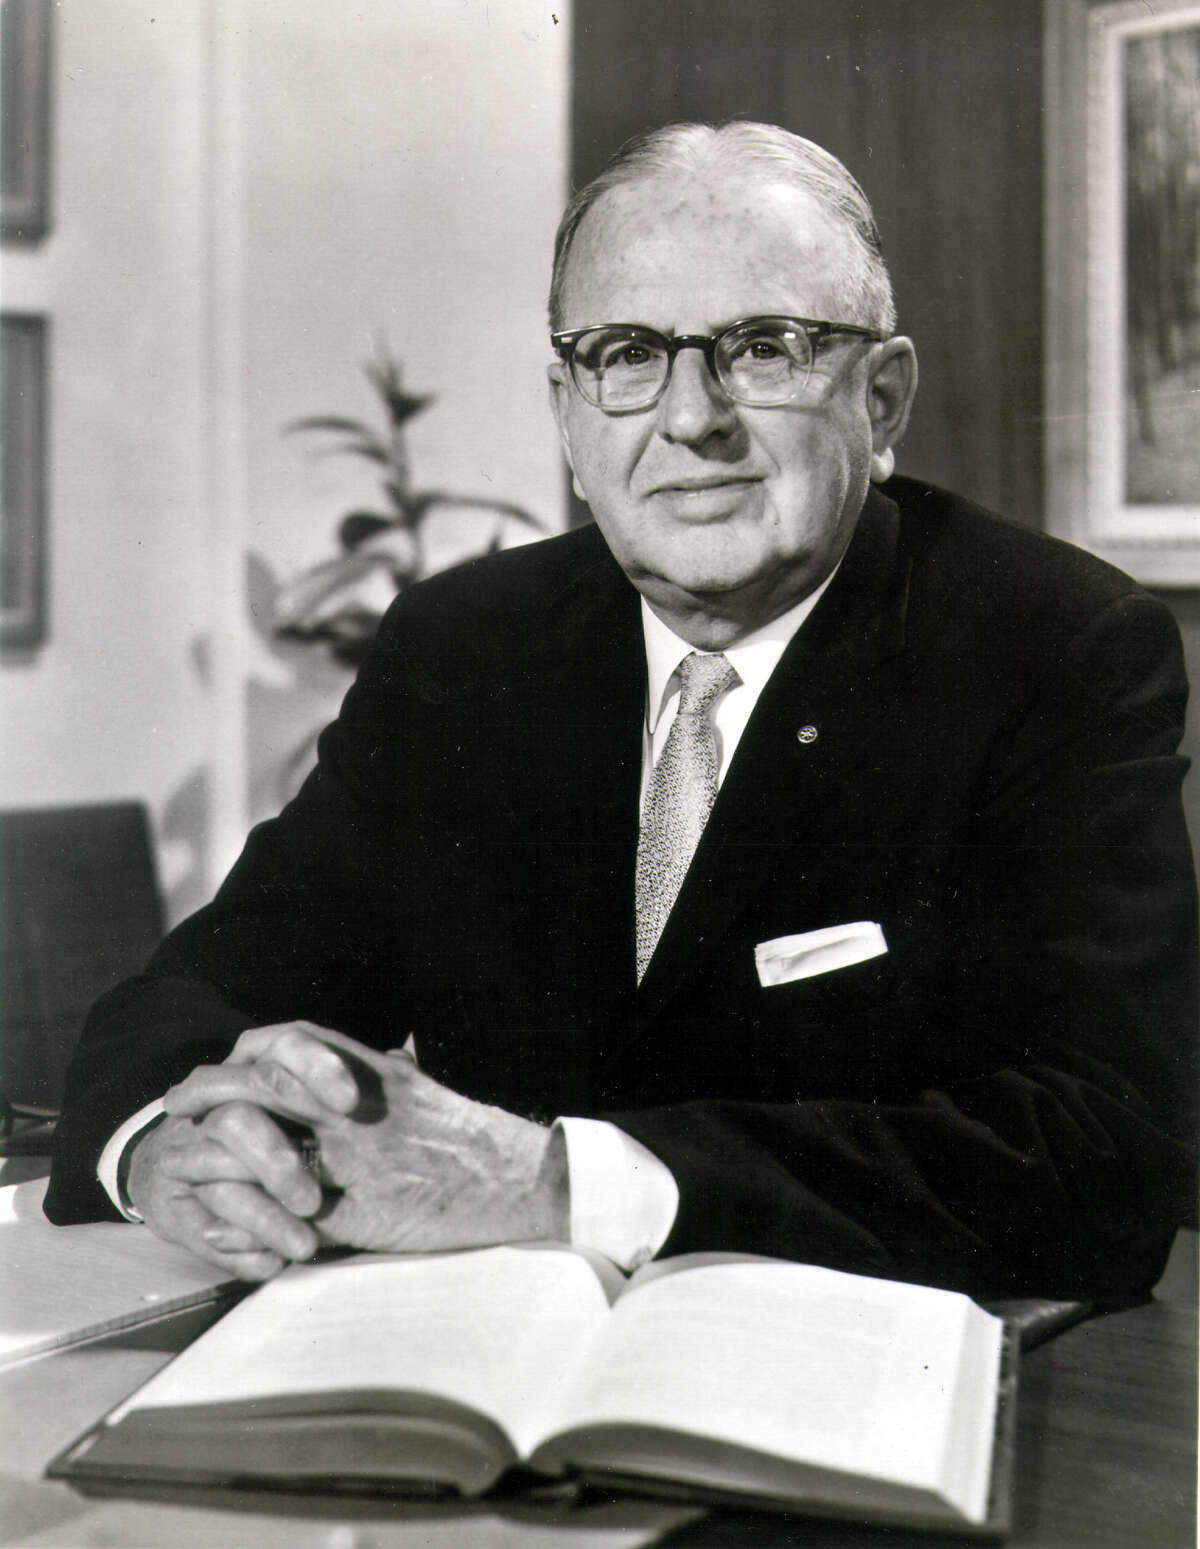 Dr. Norman Vincent Peale, world-renowned religious leader, and author of a new Prentice-Hall book,YOU CAN IF THINK YOU CAN. (March 7, 1974) FILE PHOTO